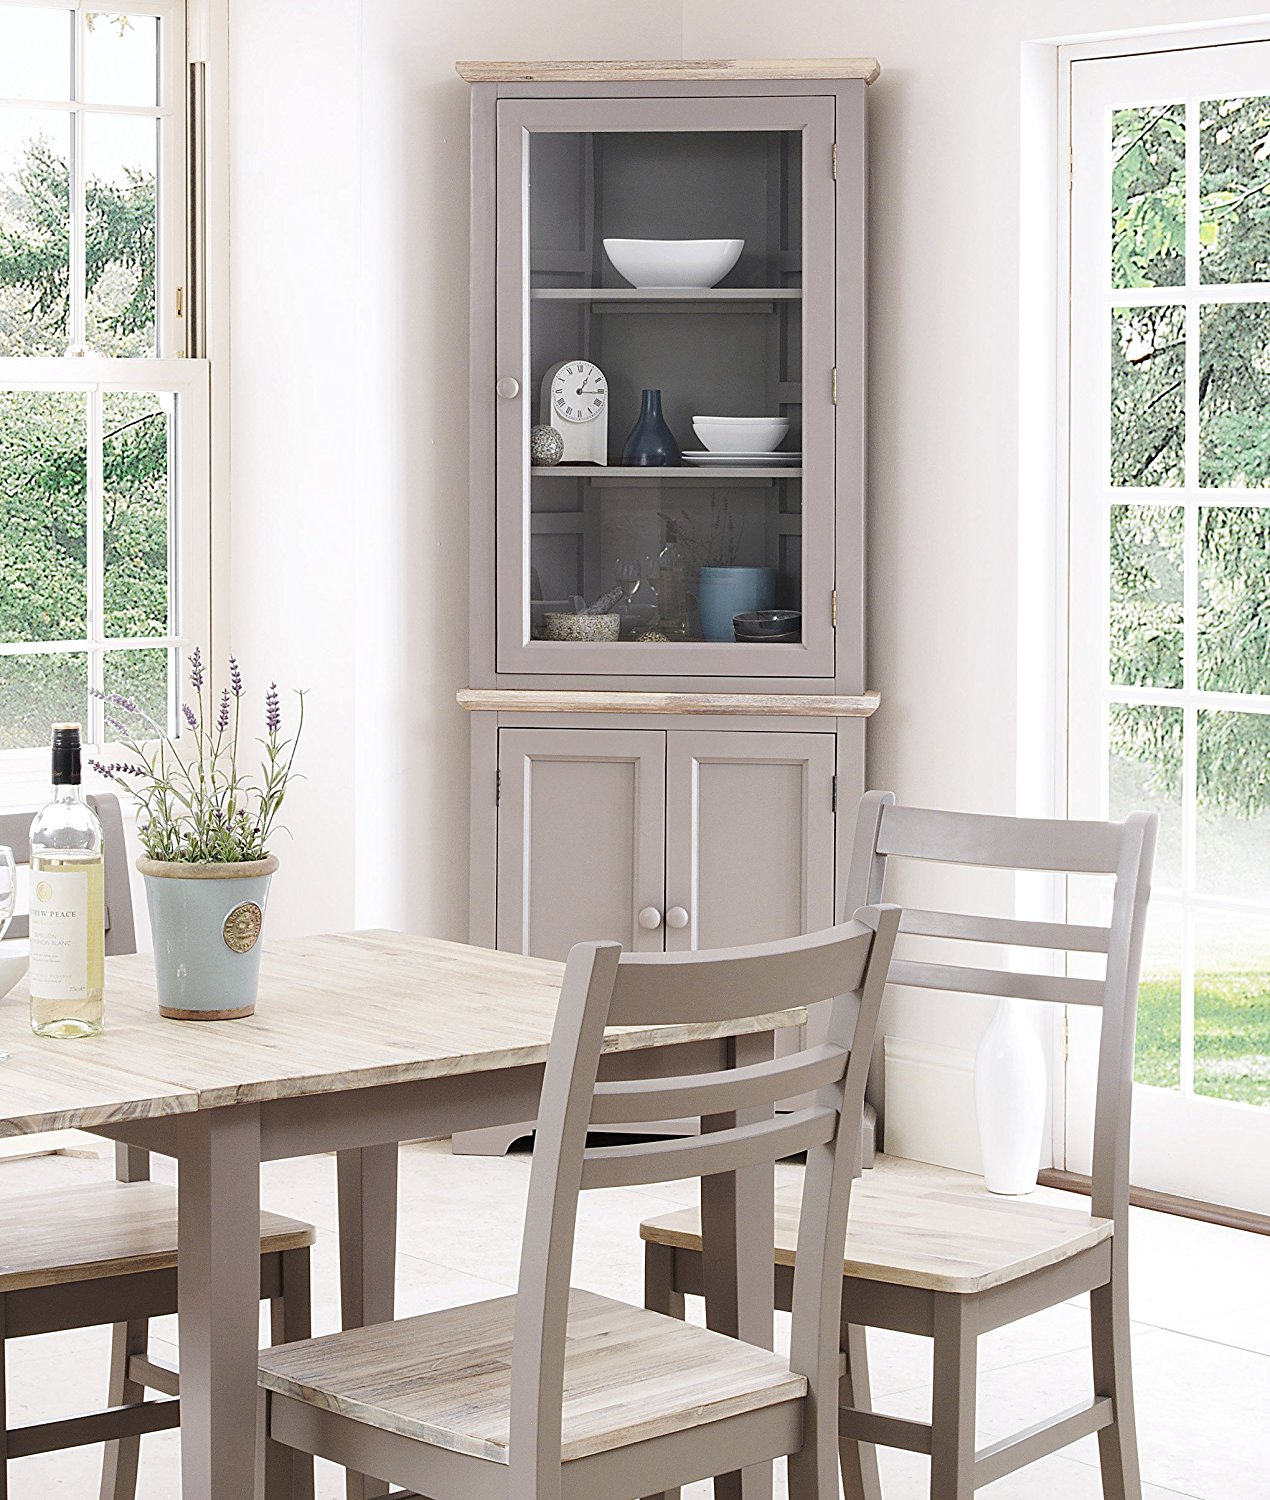 Picture of: Corner Dresser With Glass Door